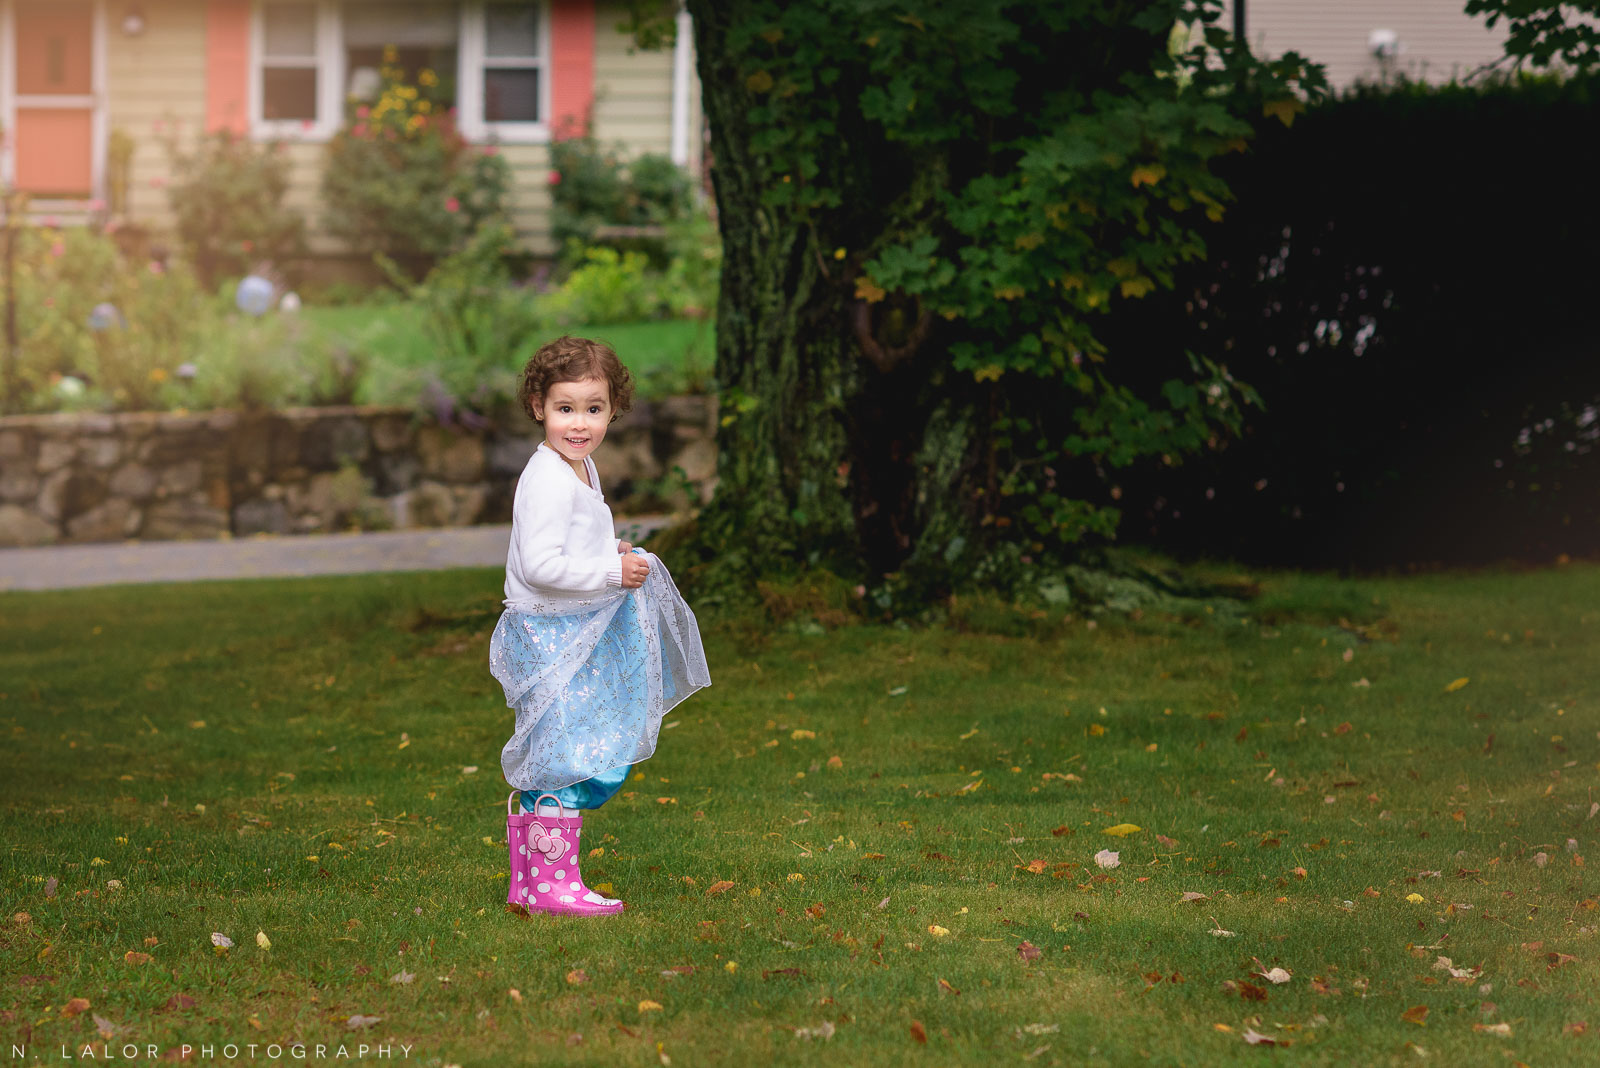 Elsa wearing rain boots. A mini dress-up photo session in Fairfield County, CT by N. Lalor Photography.